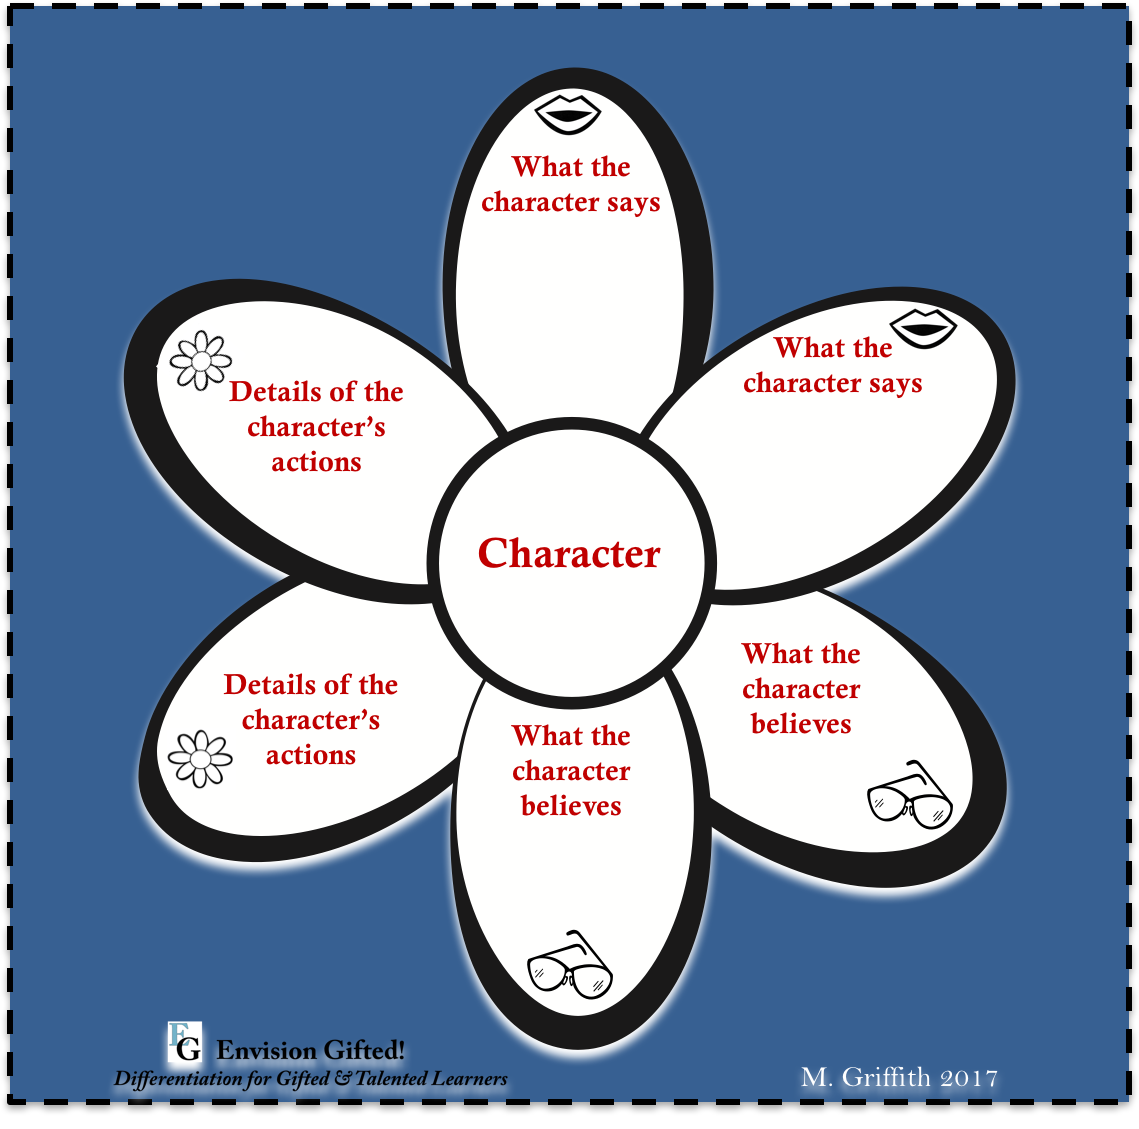 Envision Gifted. Character Analysis flower